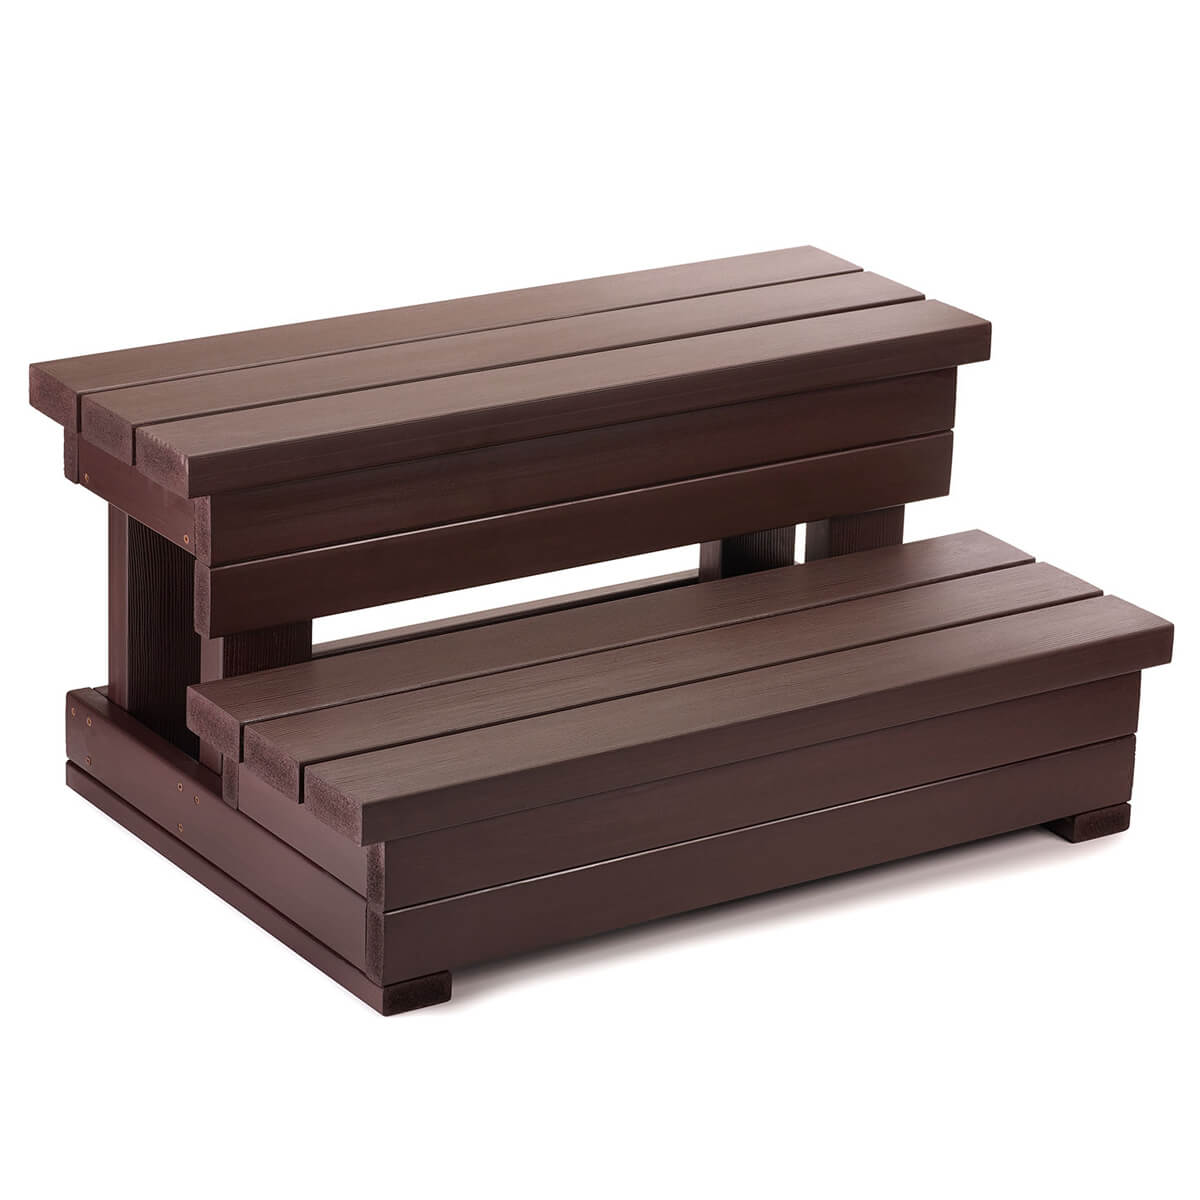 Hot Spring® 32″ Everwood Spa Steps Product Image